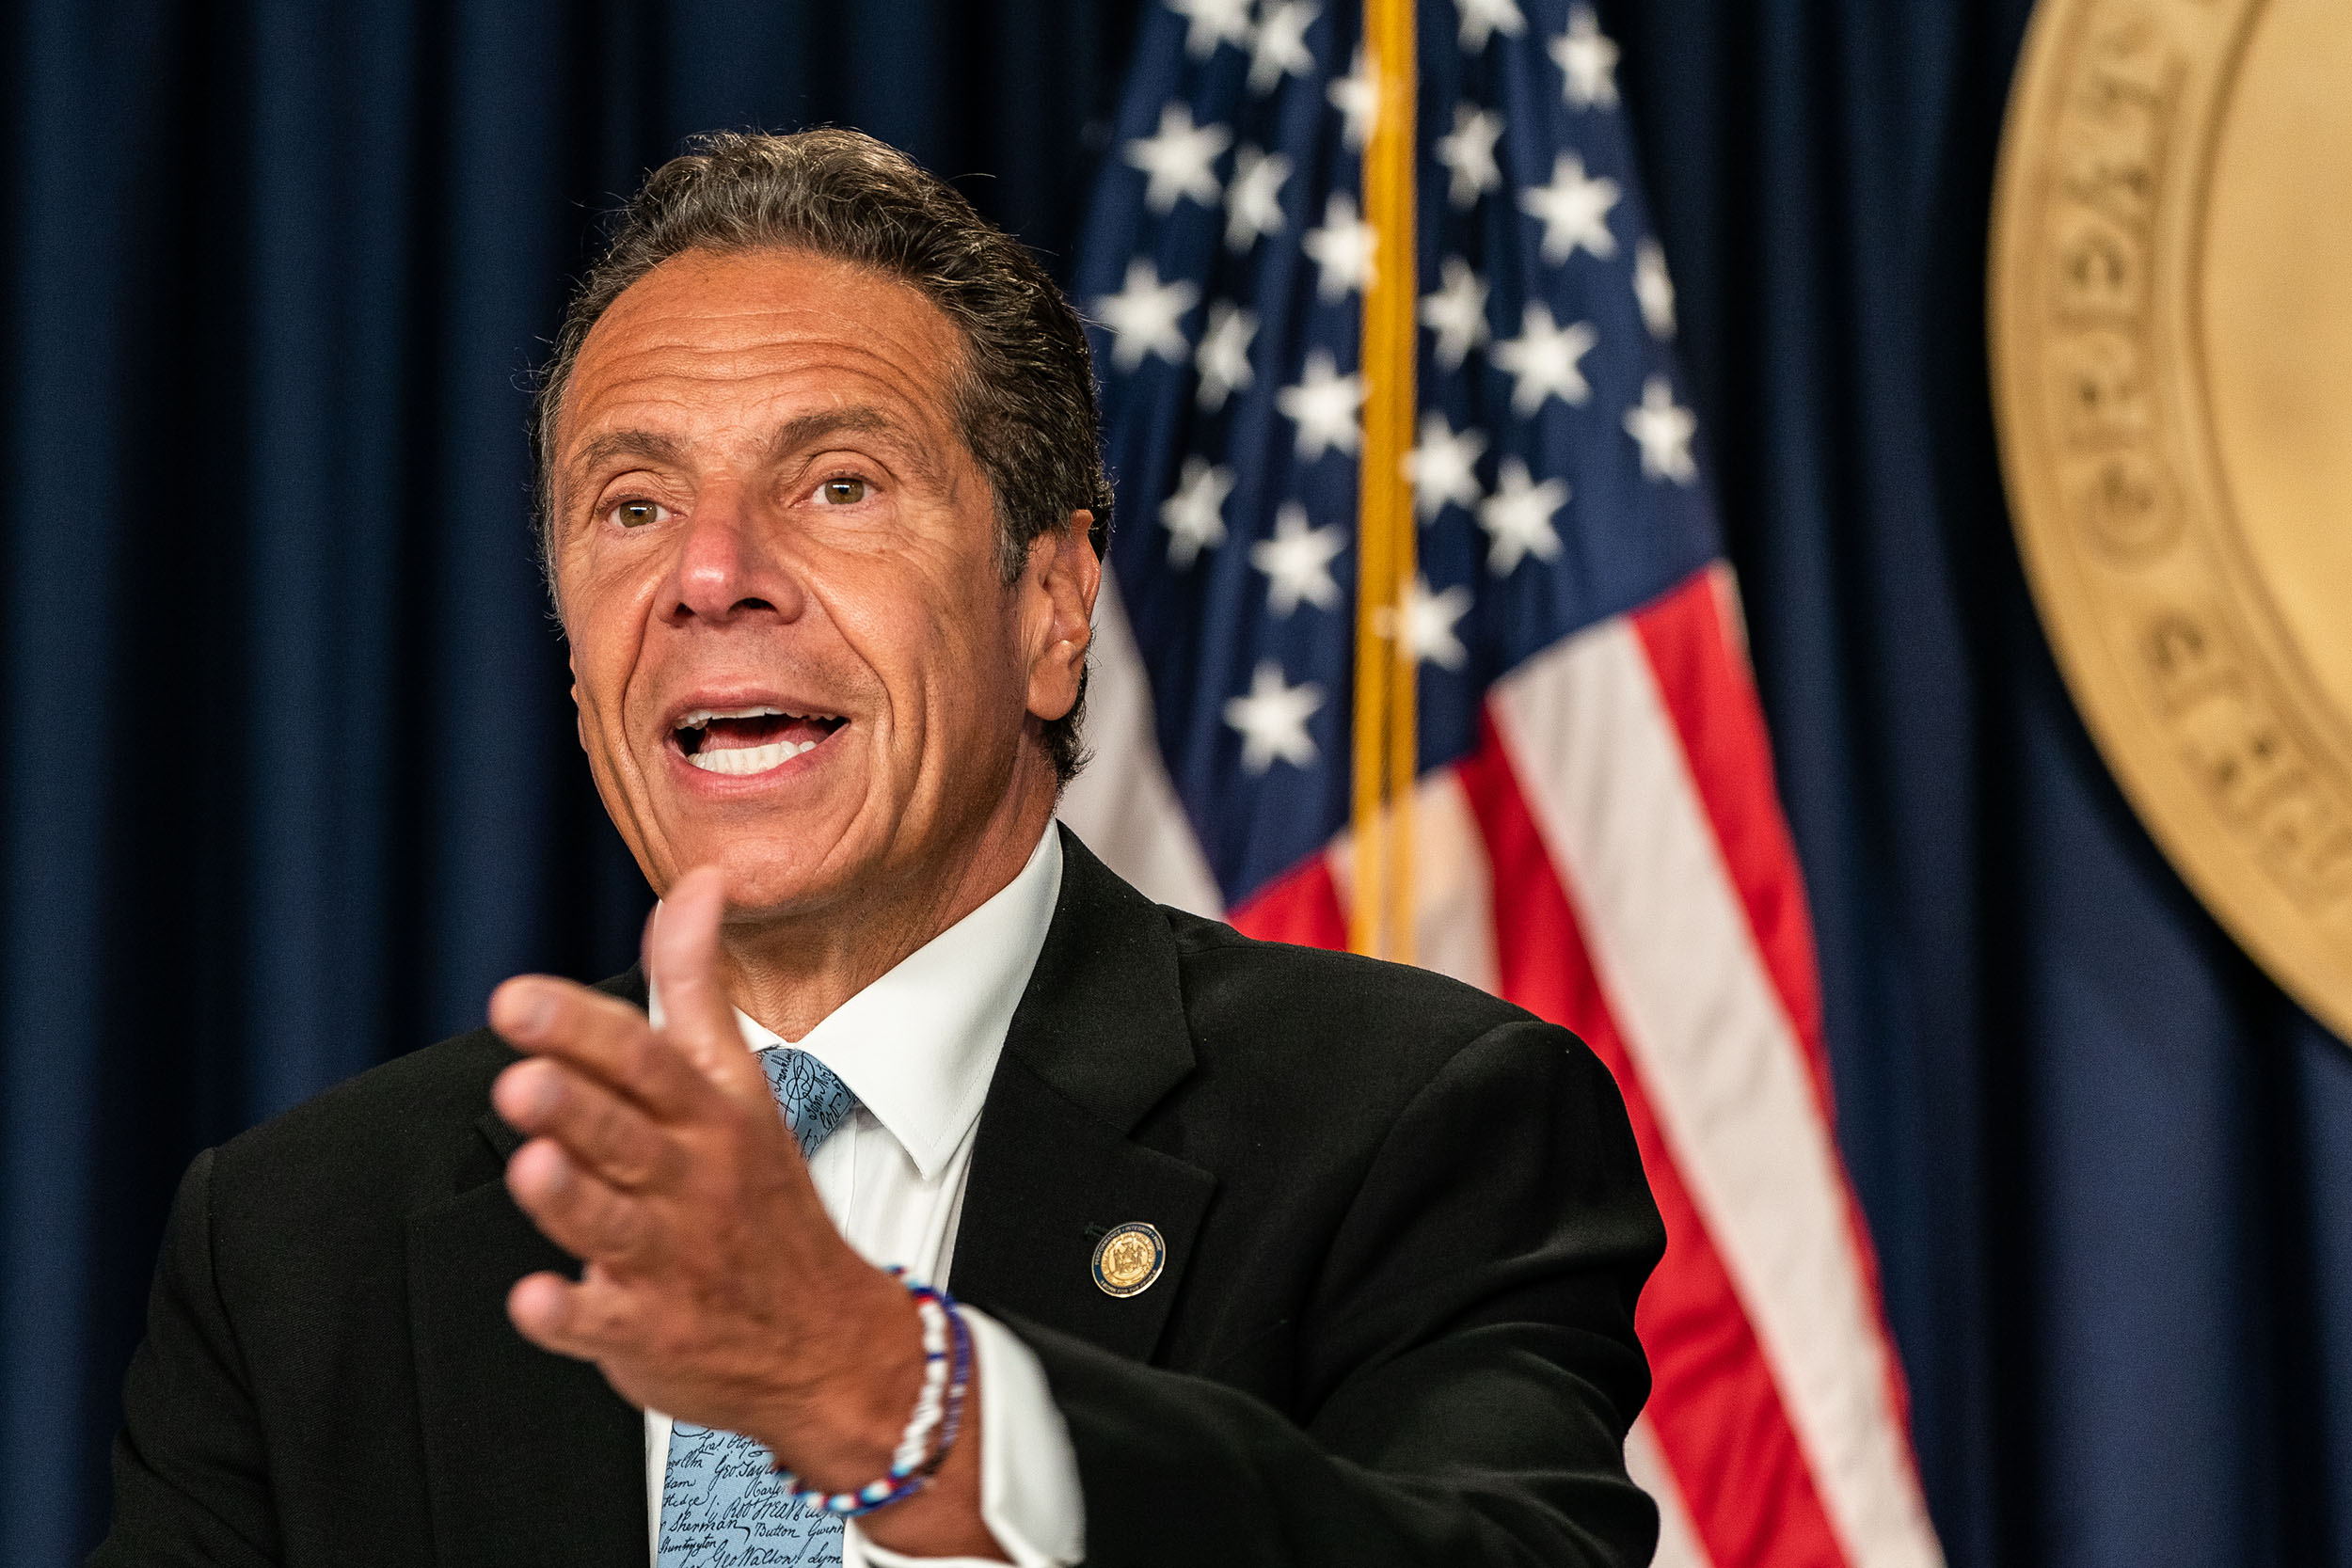 New York Gov. Andrew Cuomo speaks during the daily media briefing at the Office of the Governor of the State of New York on July 23, in New York.